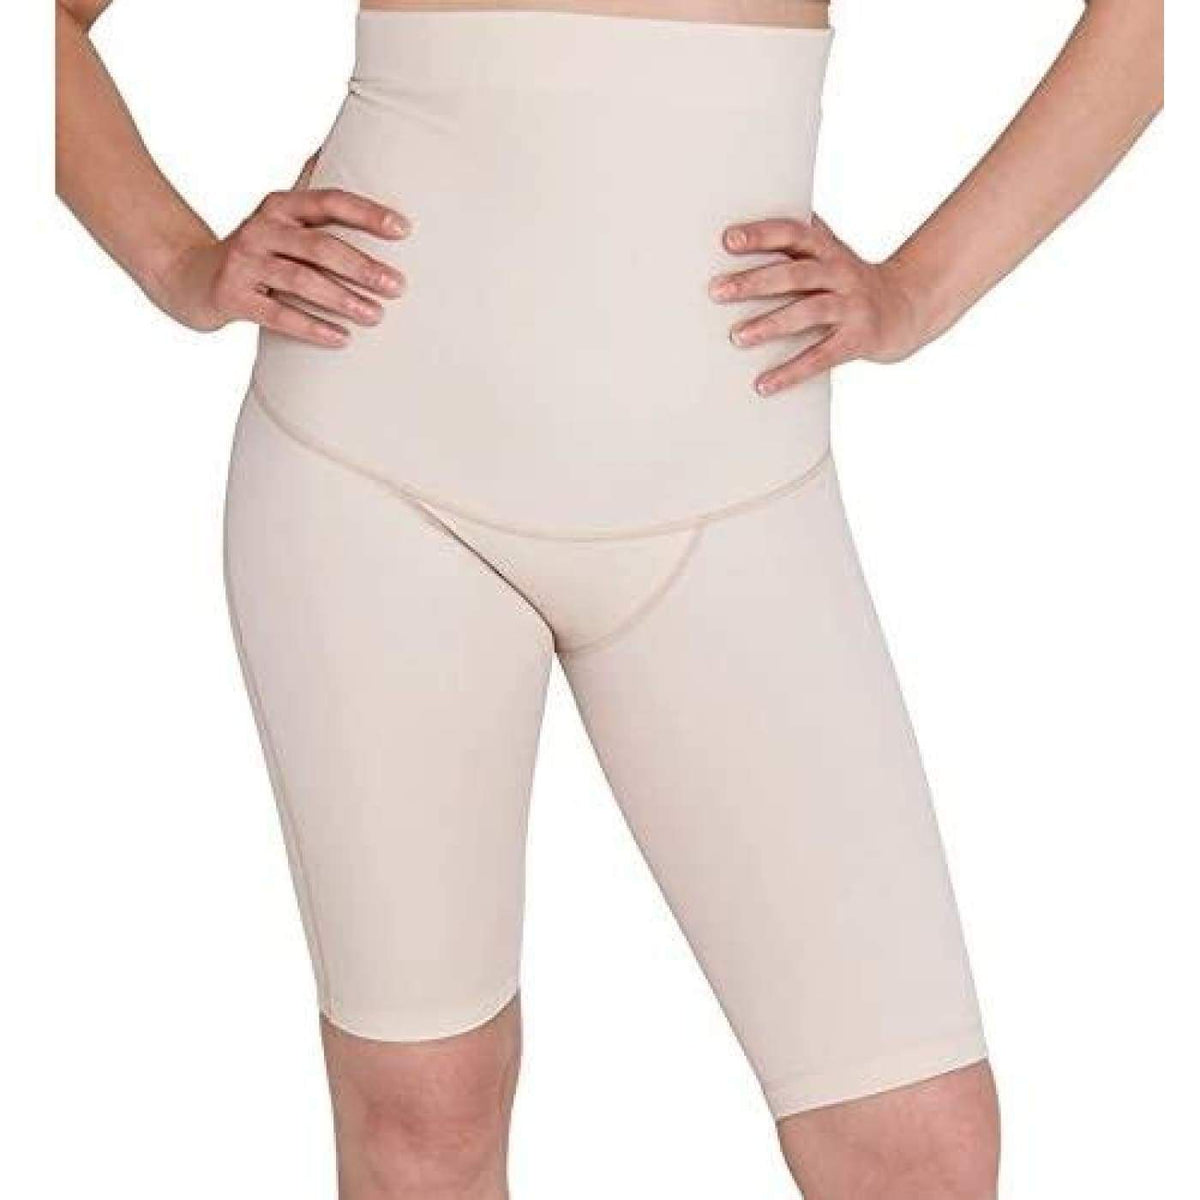 SRC Recovery Shorts - Champagne L - FOR MUM - MATERNITY SUPPORT GARMENTS (PRE/POST)